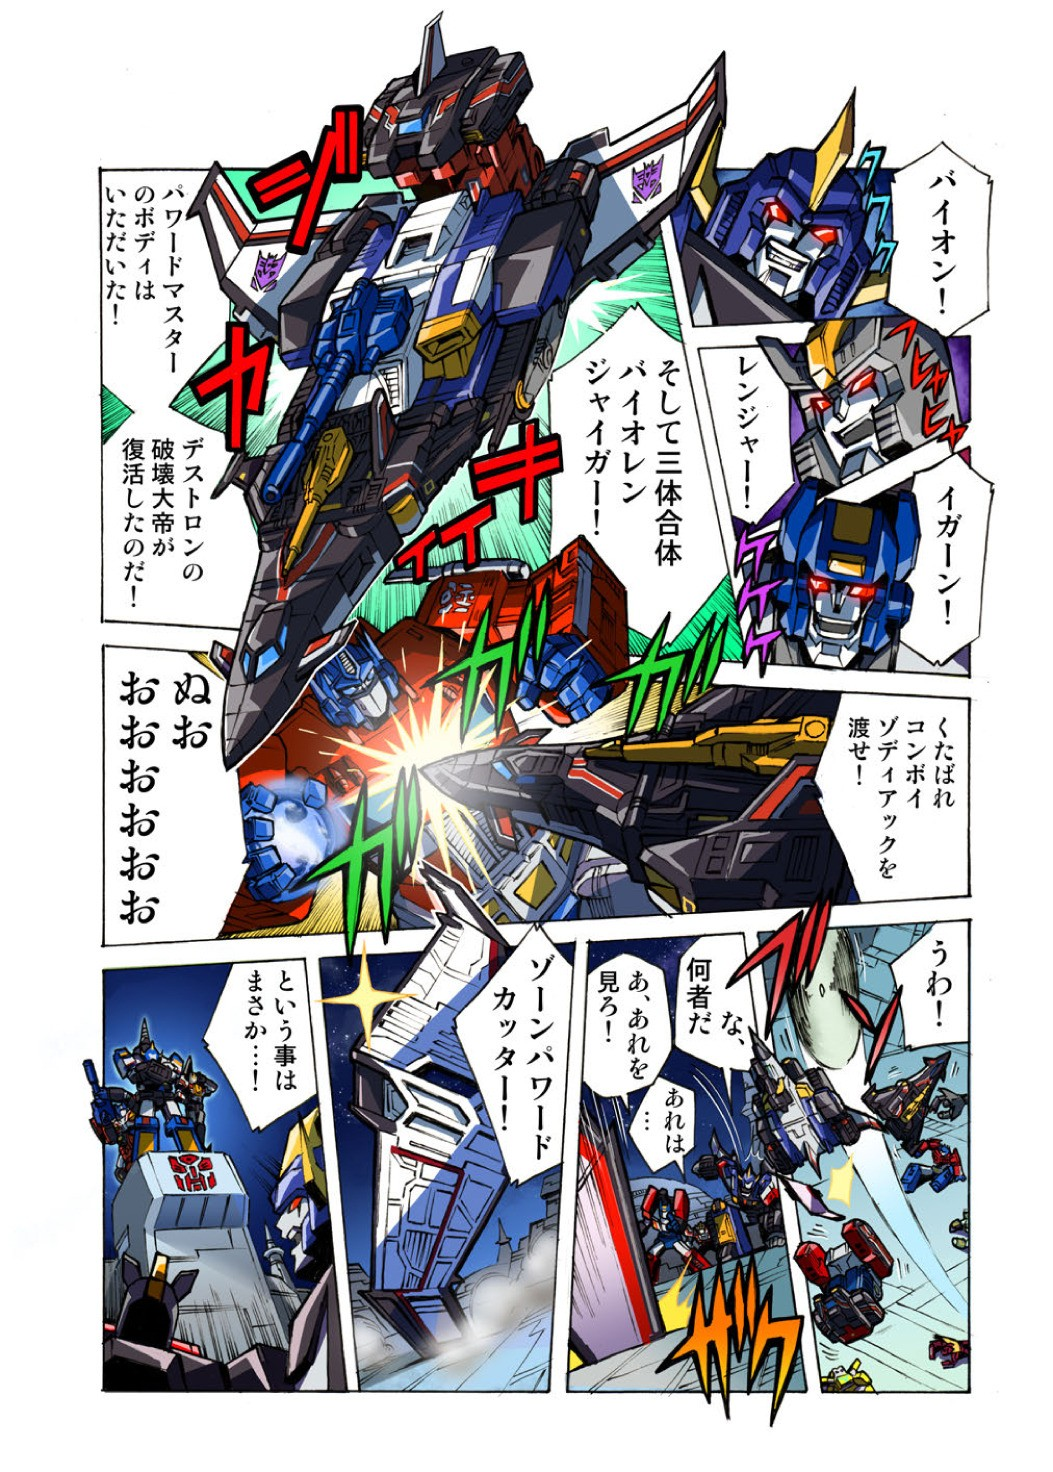 Transformers News: Takara Tomy LG-EX Big Powered Transformers Legends Manga Chapter Released